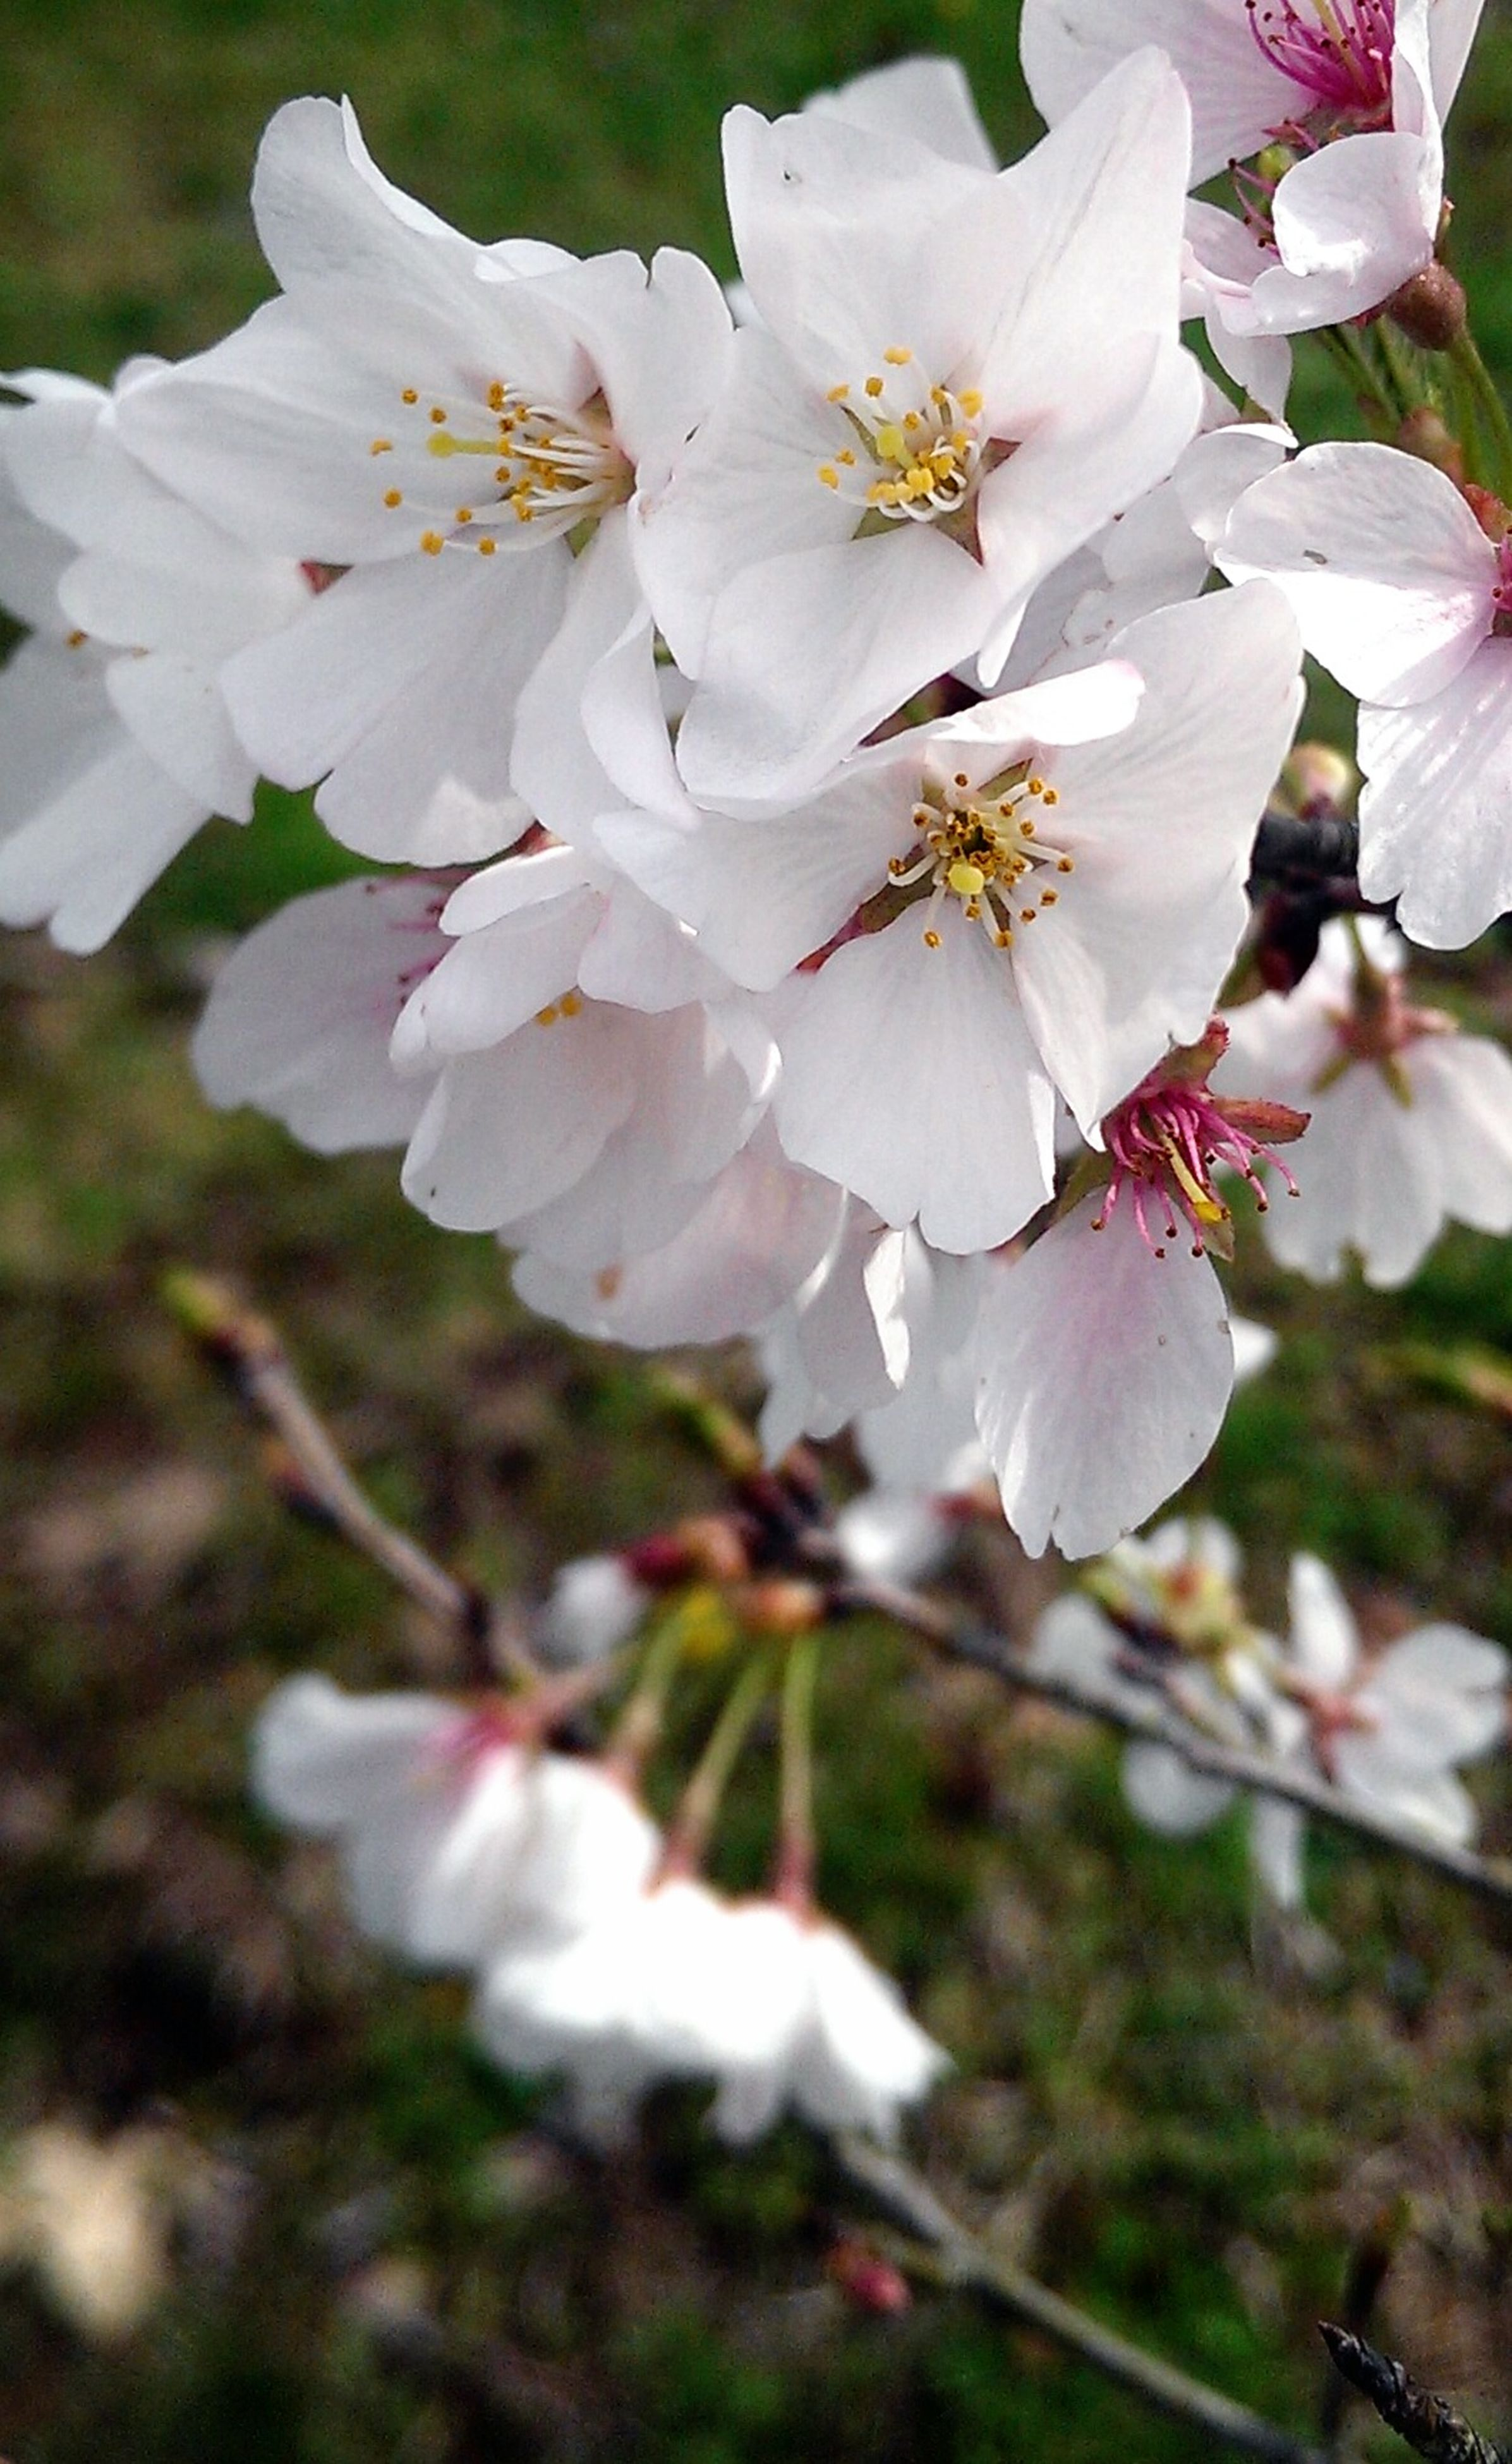 flower, freshness, petal, fragility, growth, flower head, white color, beauty in nature, focus on foreground, close-up, cherry blossom, blooming, nature, blossom, stamen, pollen, in bloom, tree, branch, day